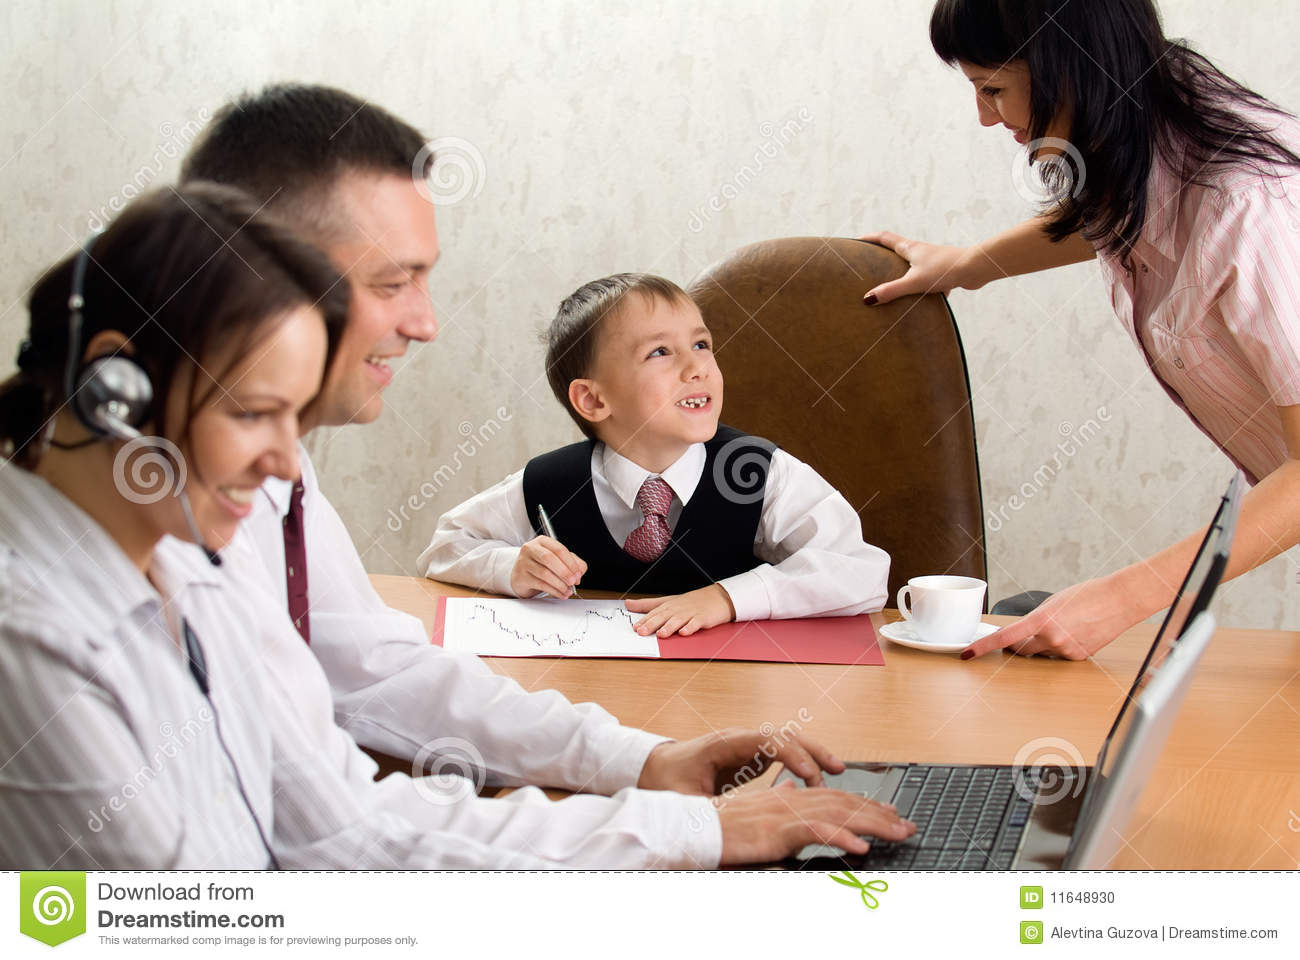 Cute kid in the role of an office manager stock photo - What is the role of an office manager ...